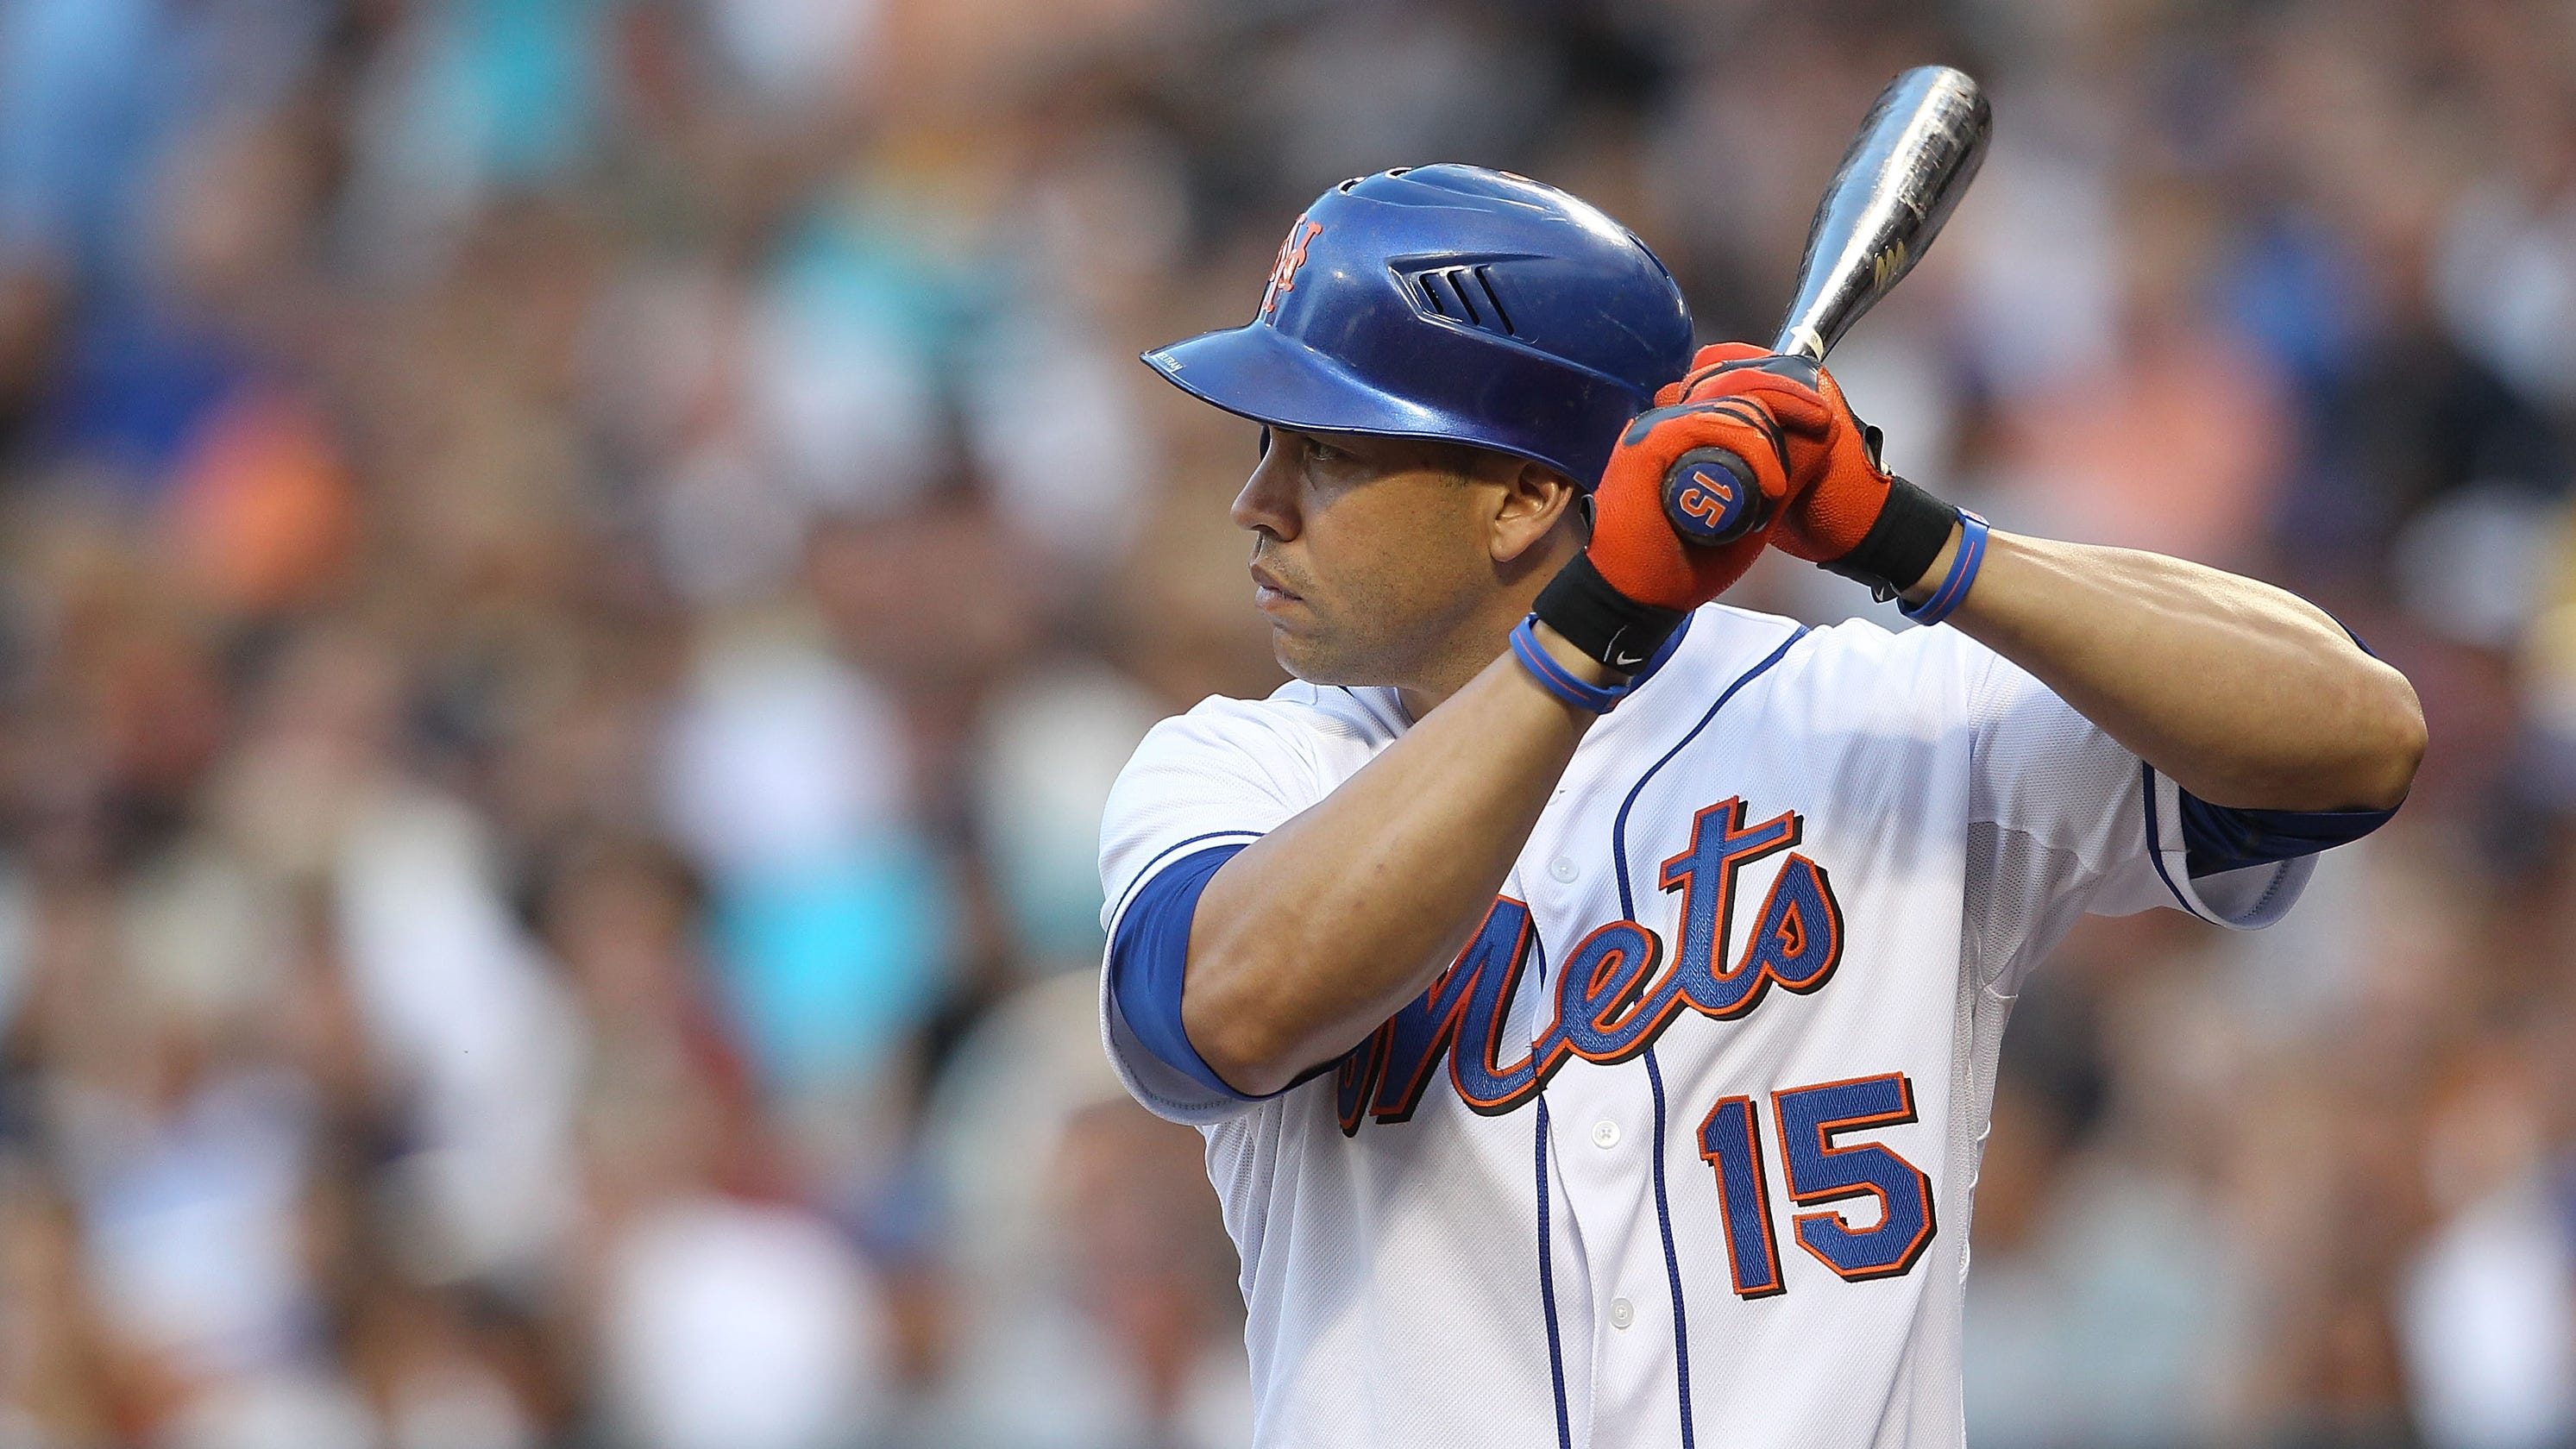 Carlos Beltran Thoughts On Ny Mets Manager Hire And The Future